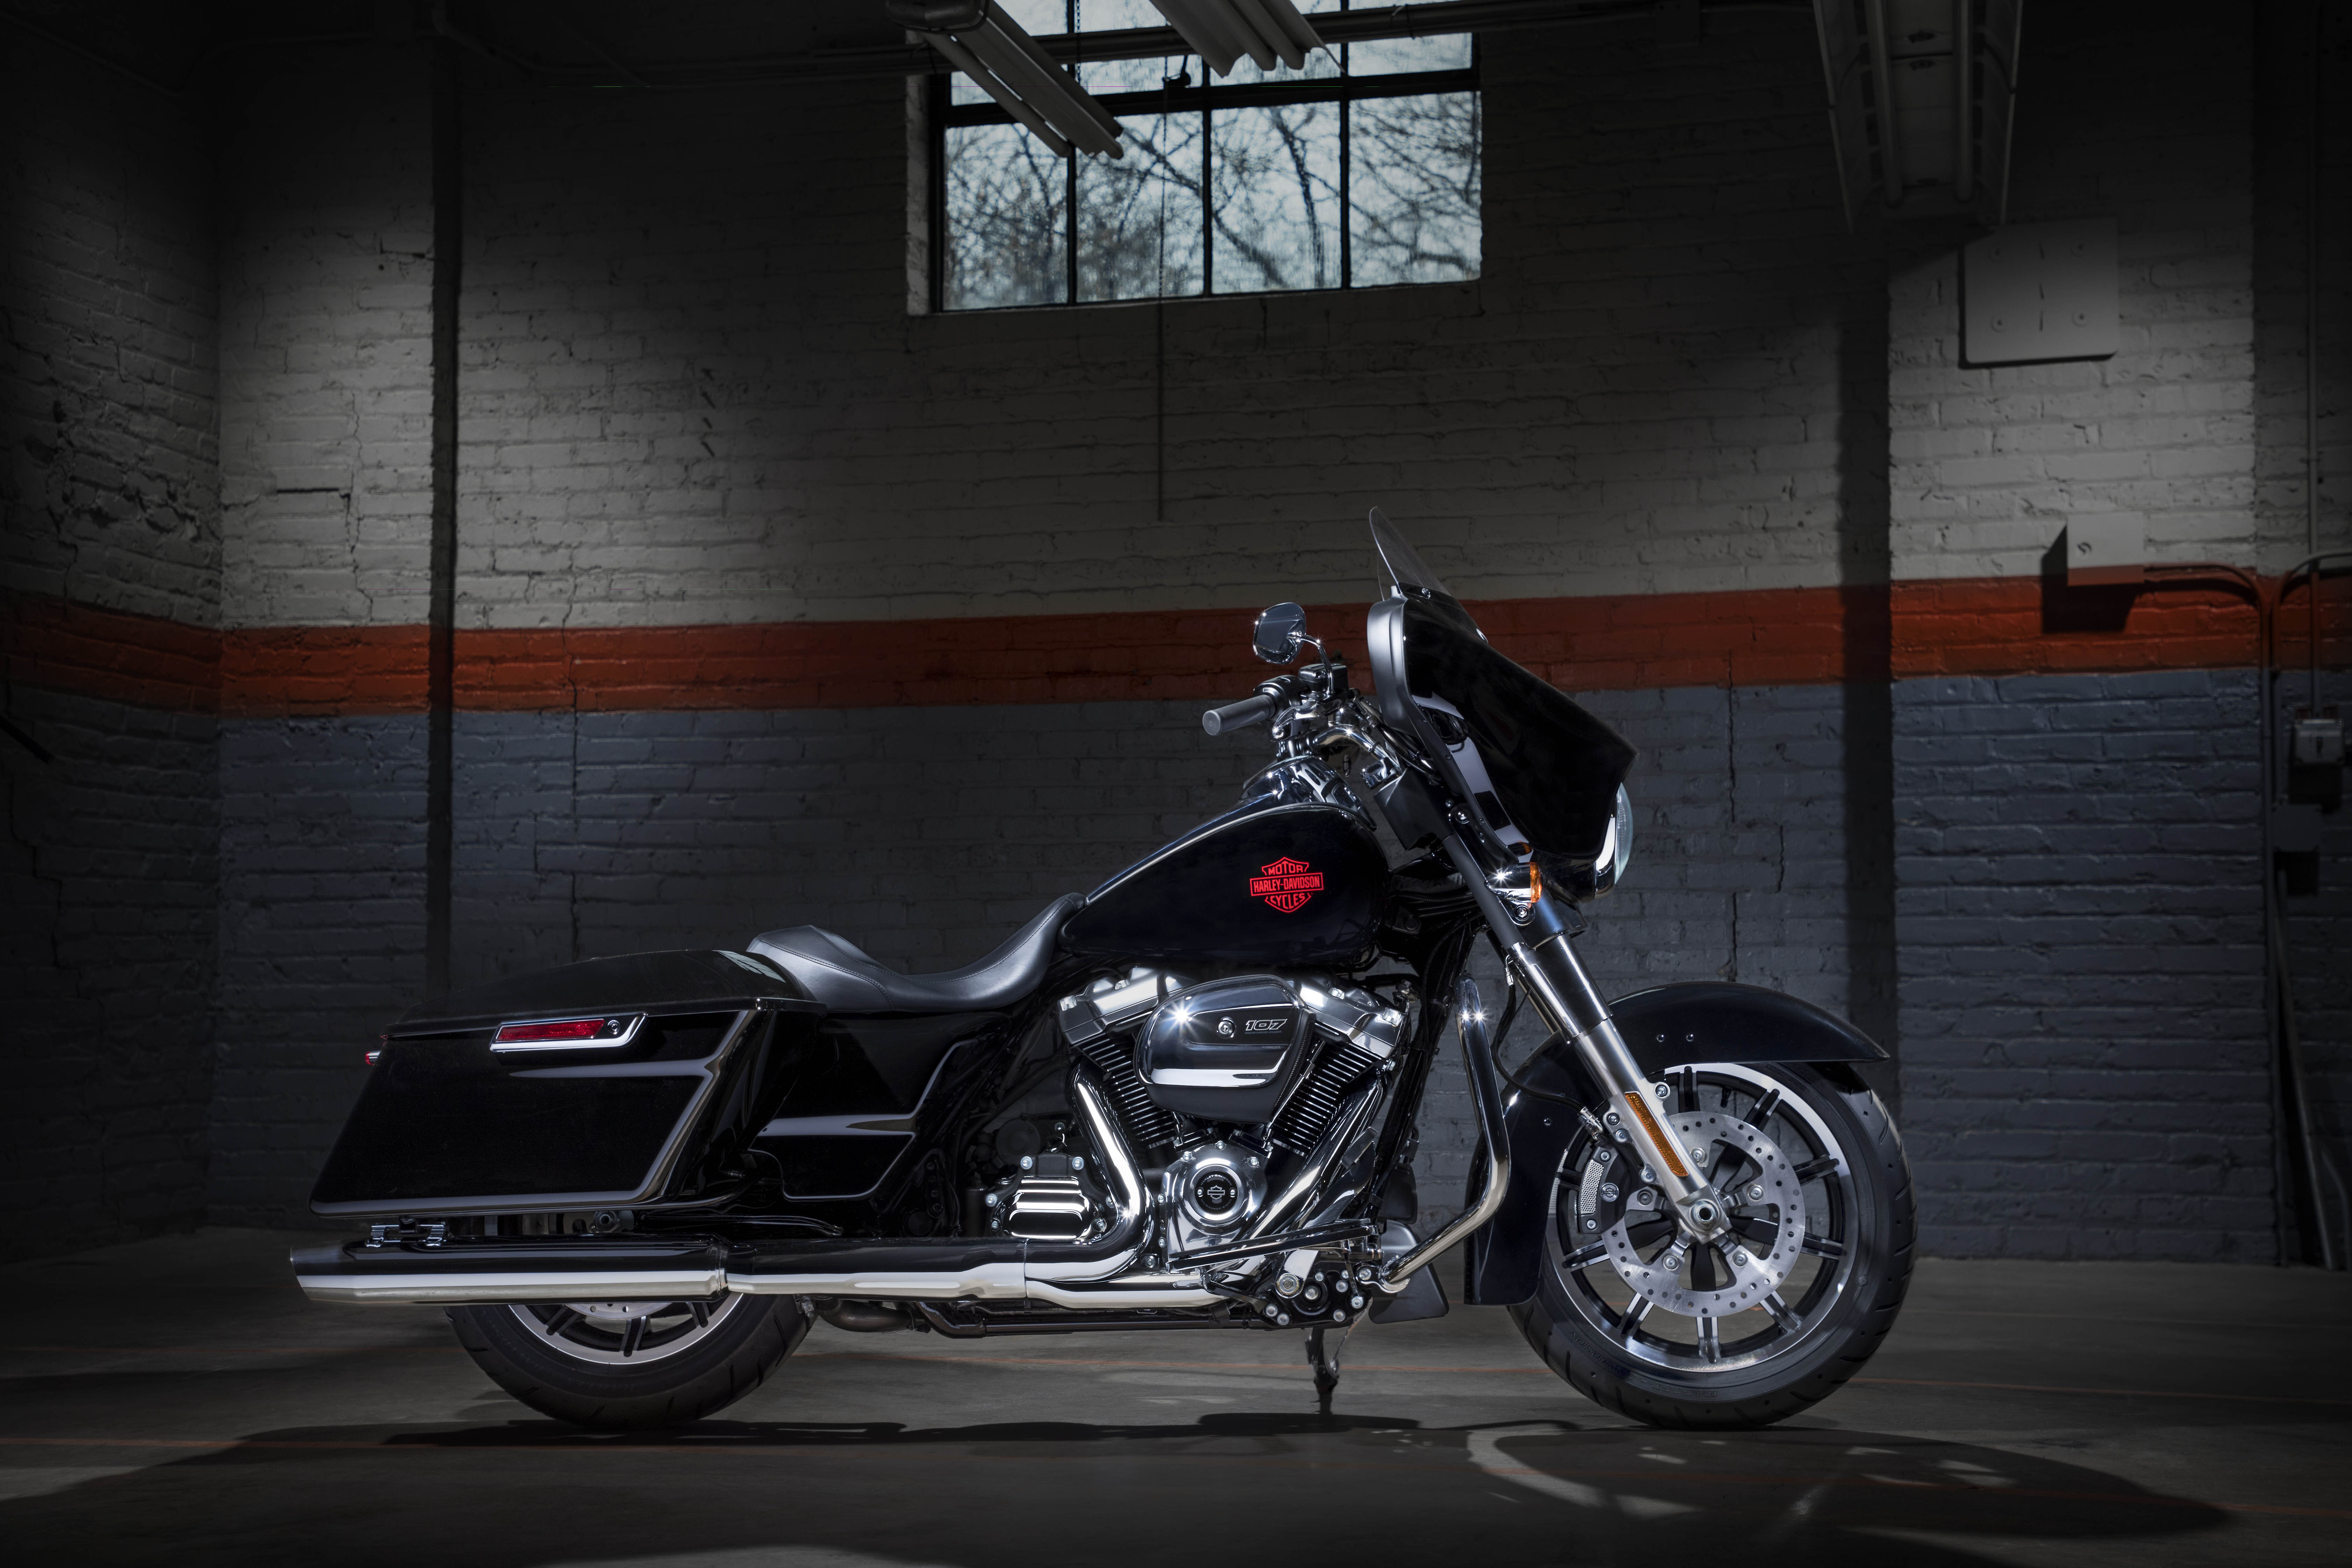 Harley-Davidson reveals the new Electra Glide Standard